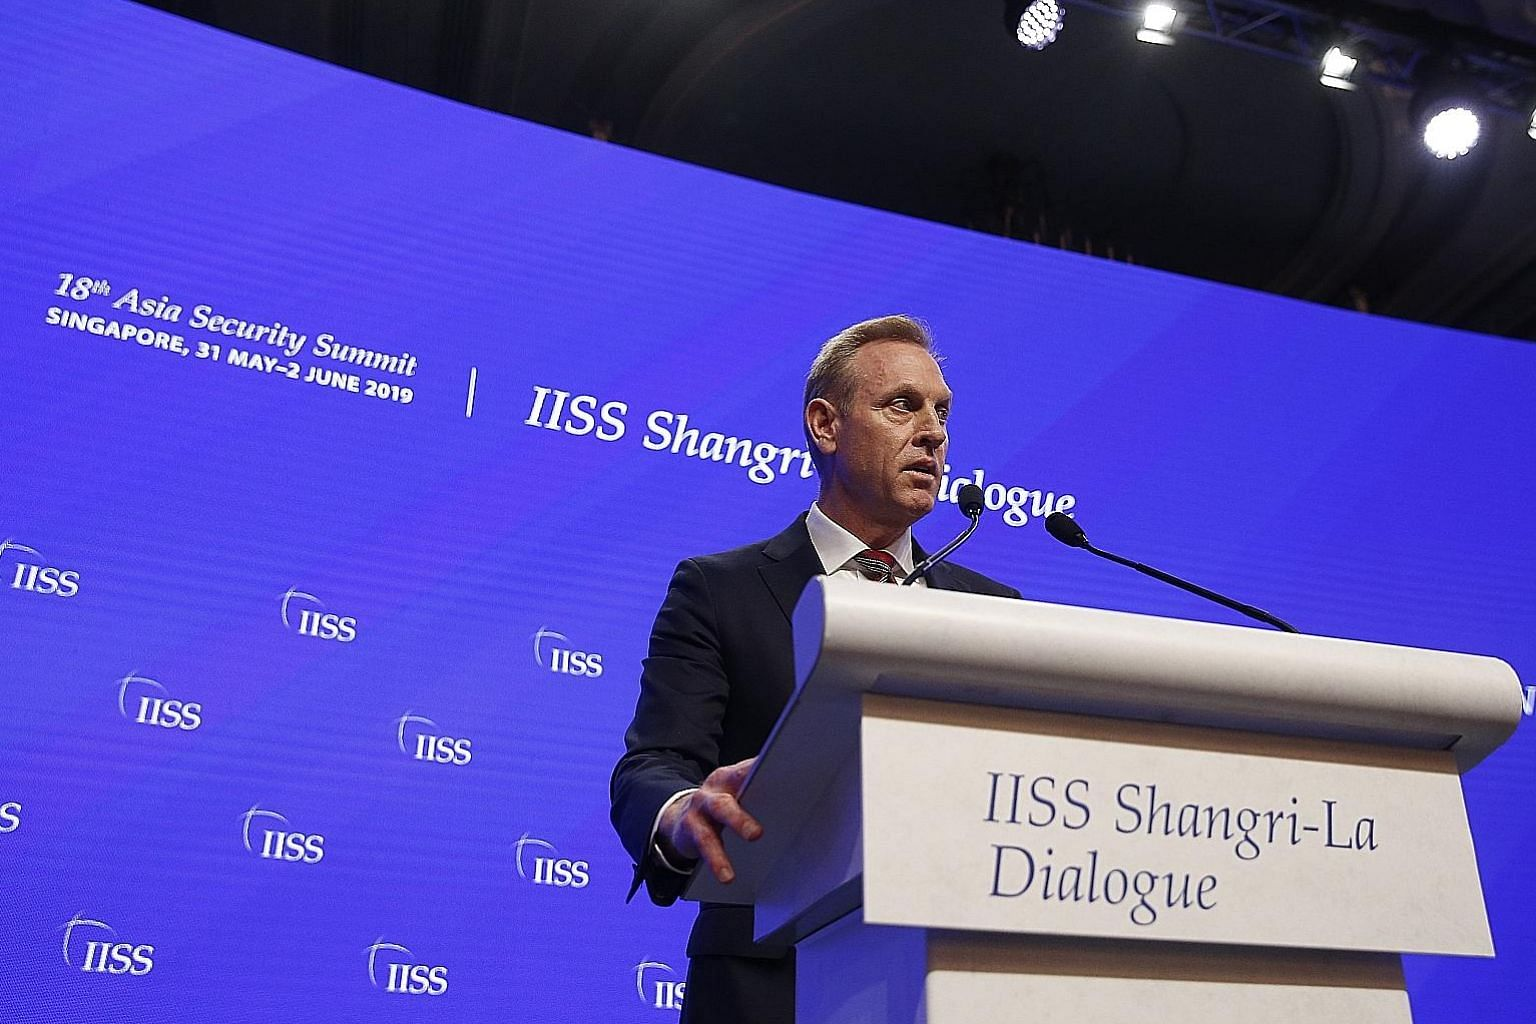 Acting US Defence Secretary Patrick Shanahan speaking at the Shangri-La Dialogue on Saturday, in his first major speech in Asia. Without mentioning China by name, he said it posed the greatest long-term threat to the region. PHOTO: EPA-EFE